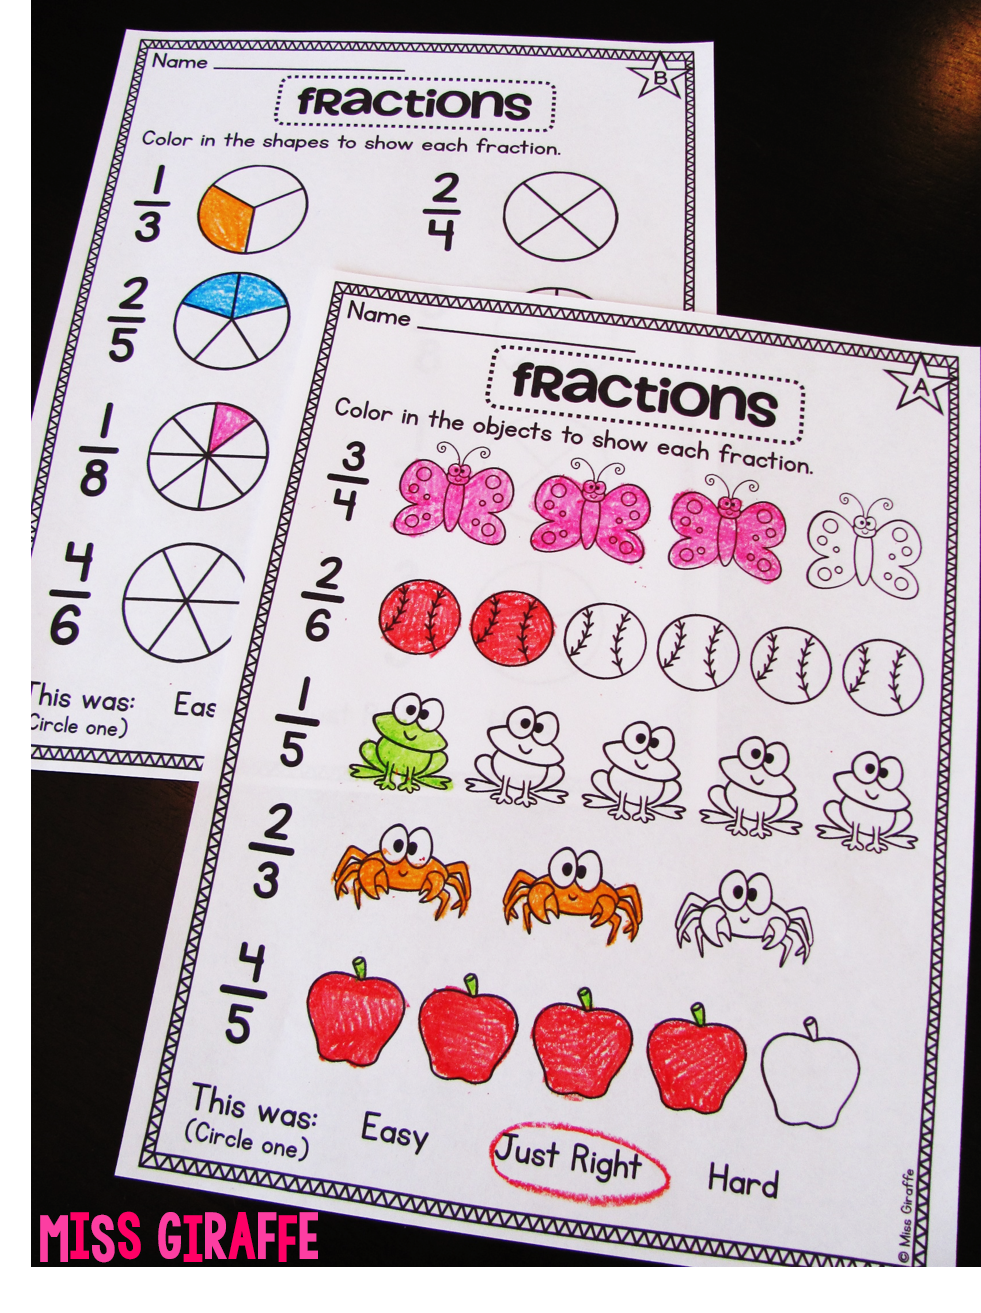 Fractions worksheets and activities that are hands on and fun